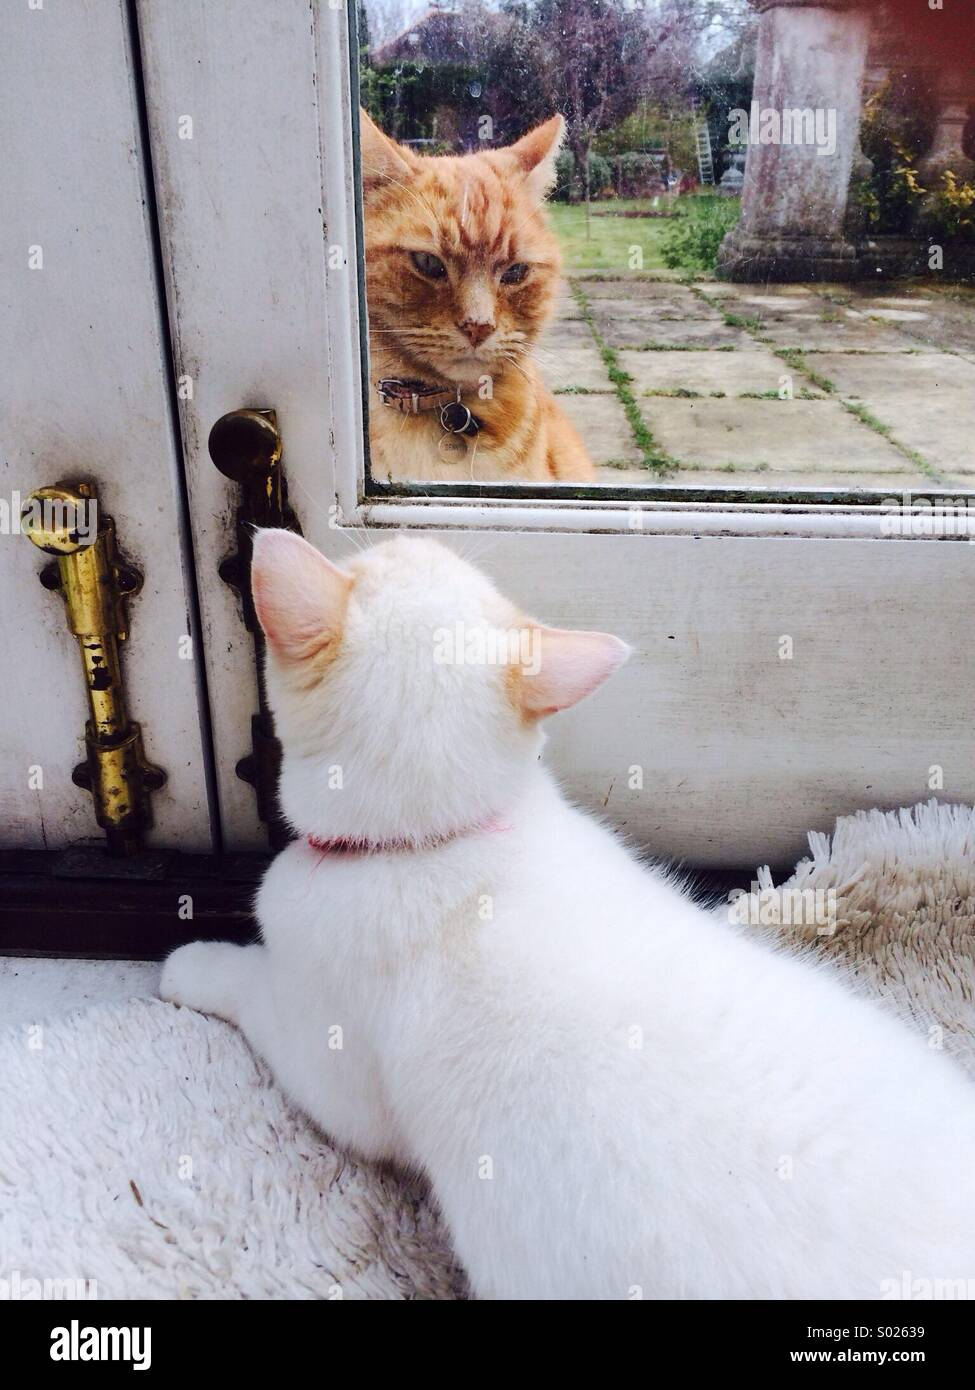 Visitor at the door inside cat and outside cat - Stock Image